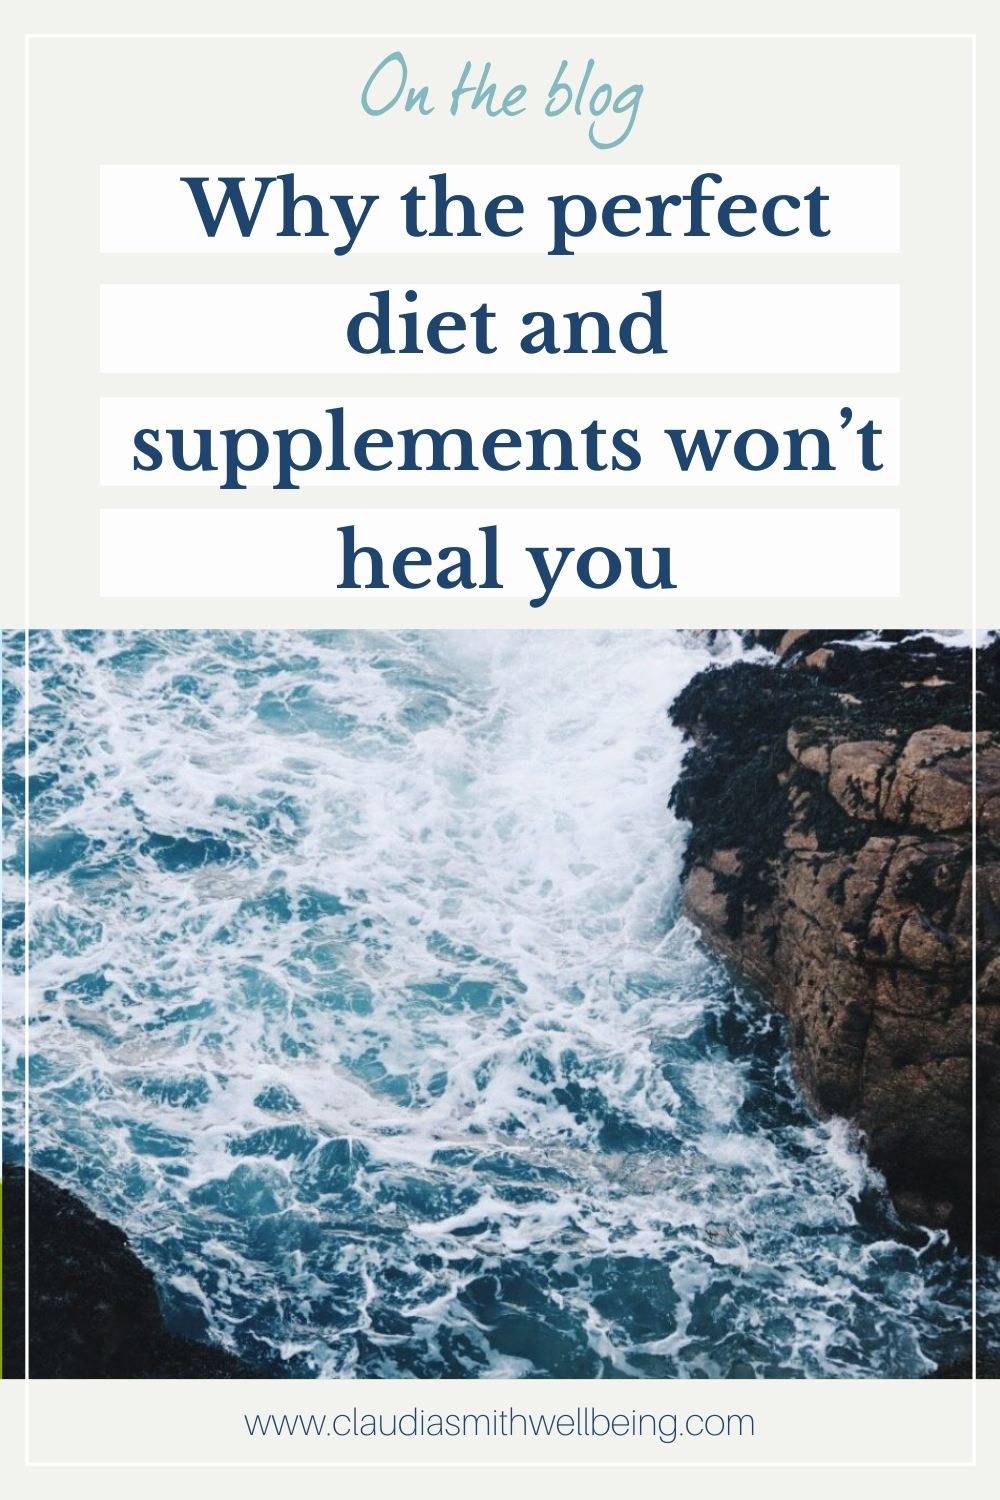 diet and supplements won't heal you